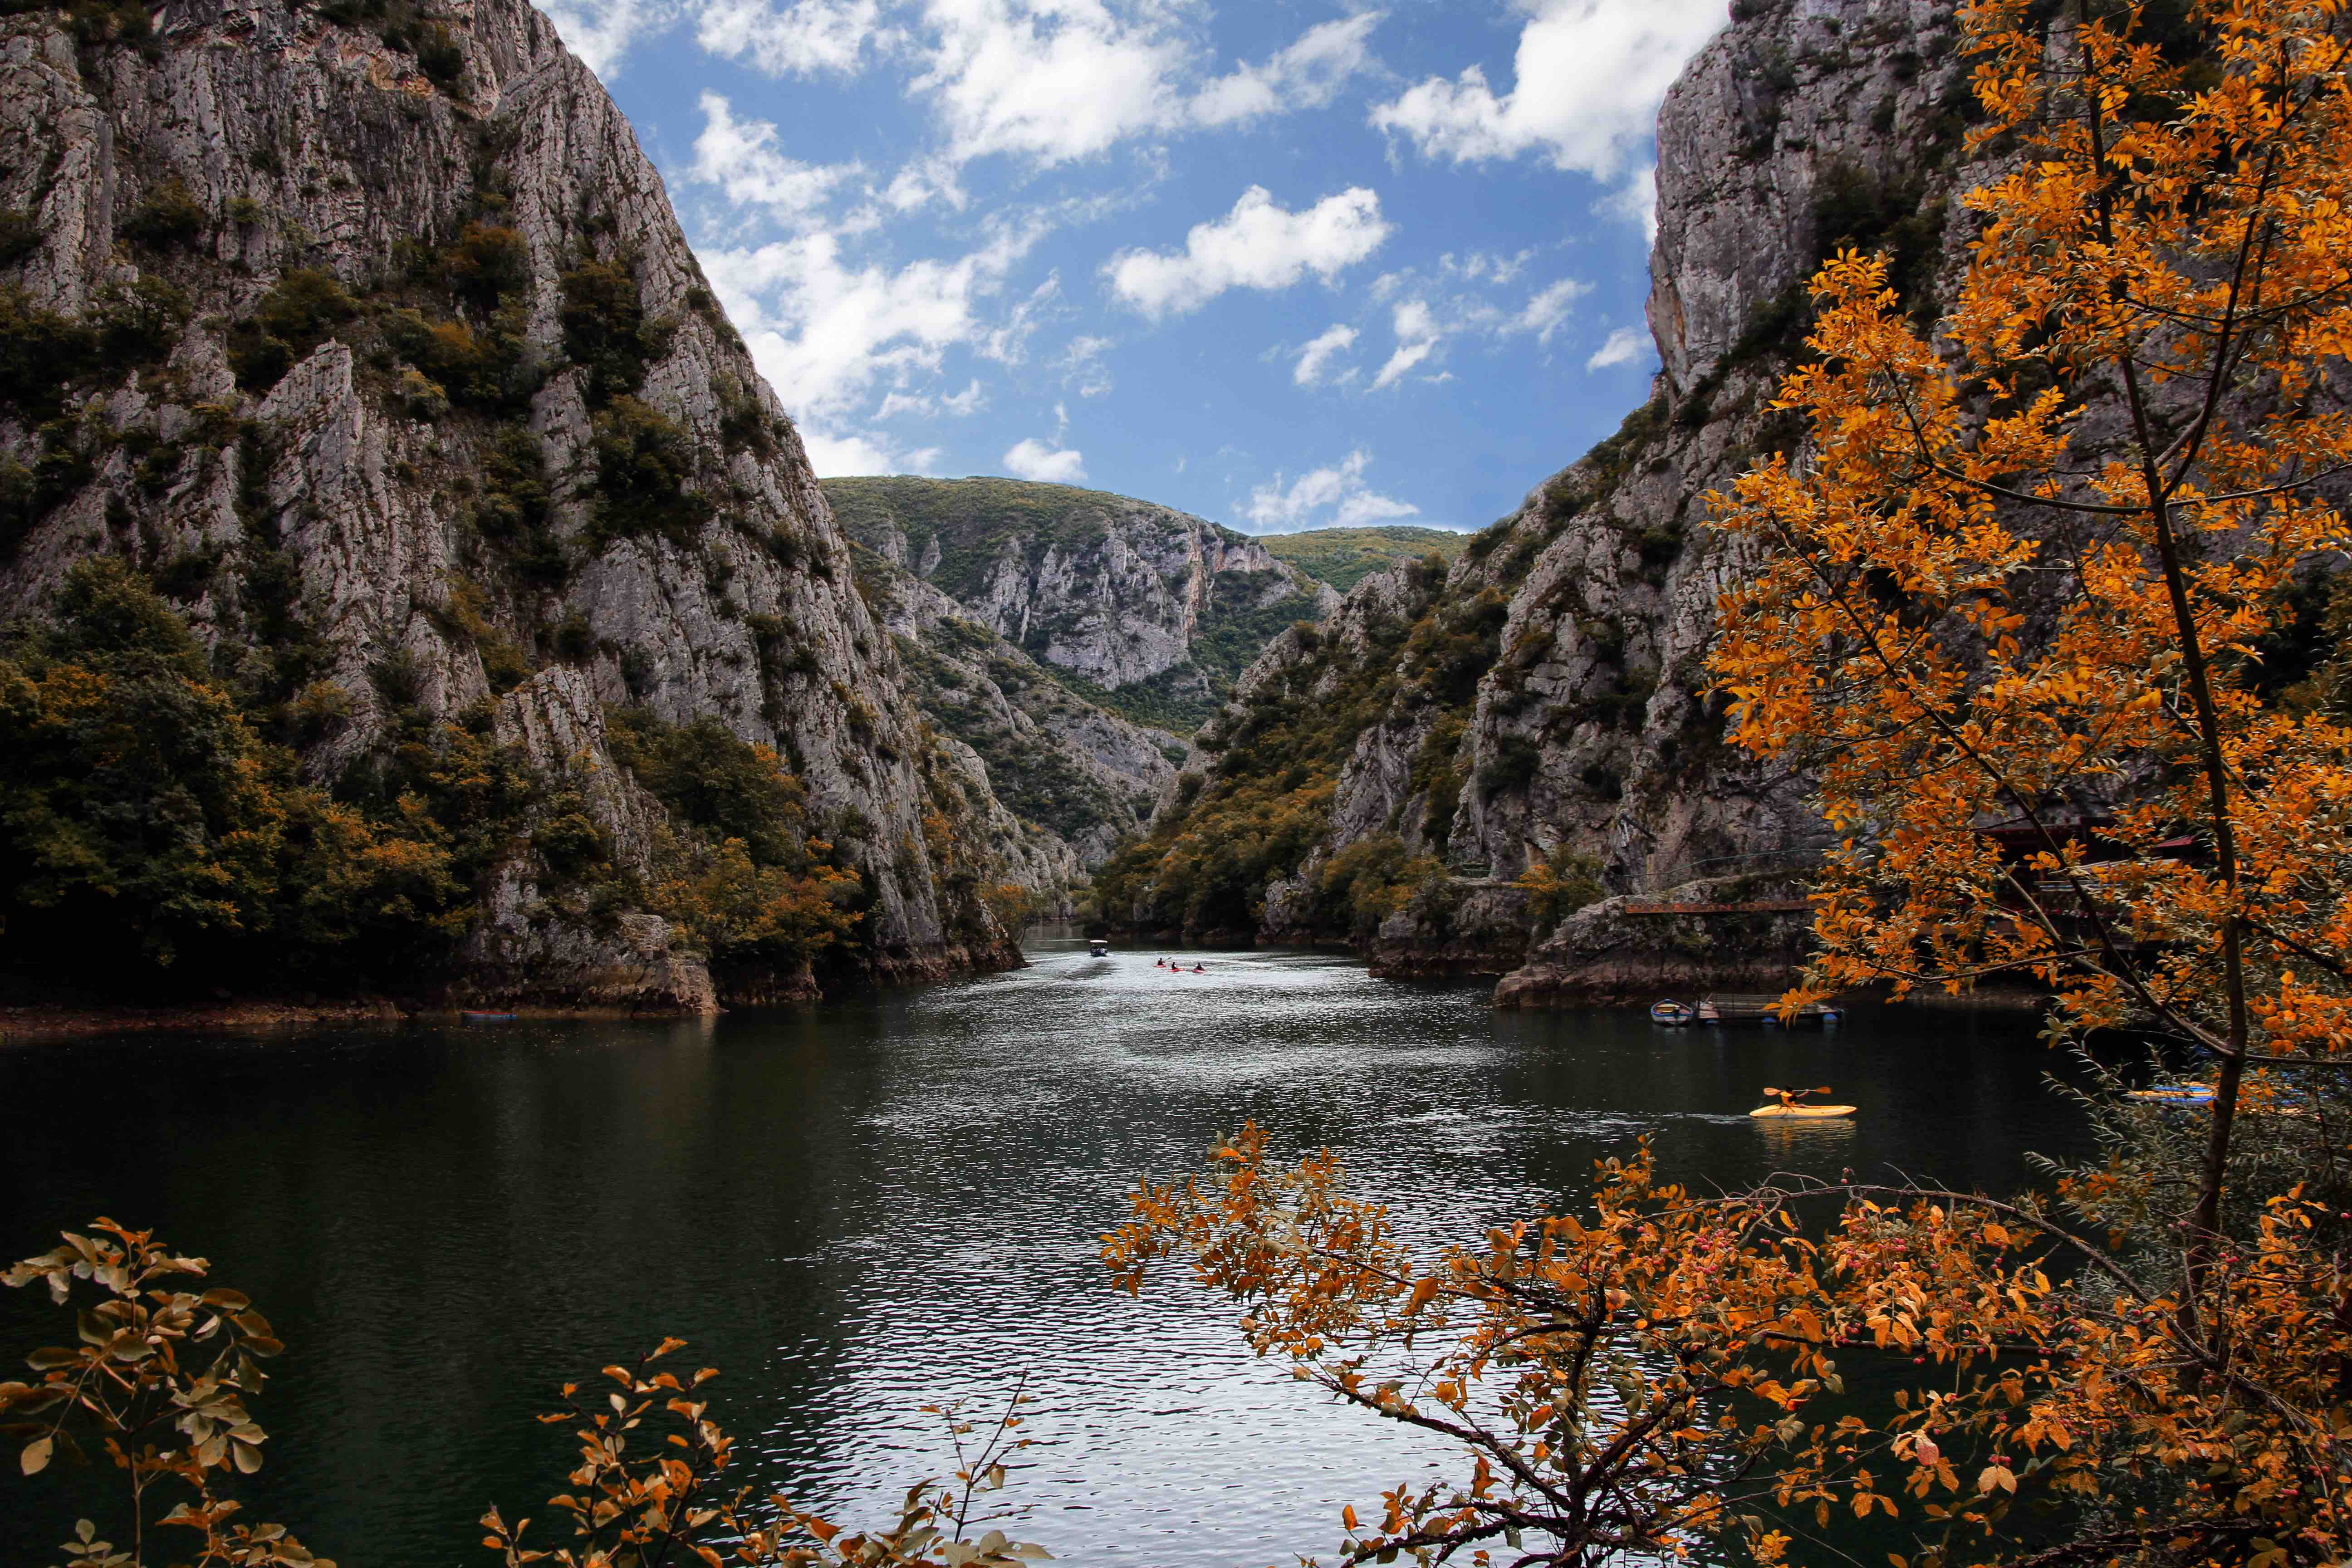 Near the capital city of Skopje is the canyon Matka, which spans 5,000 hectares of land.